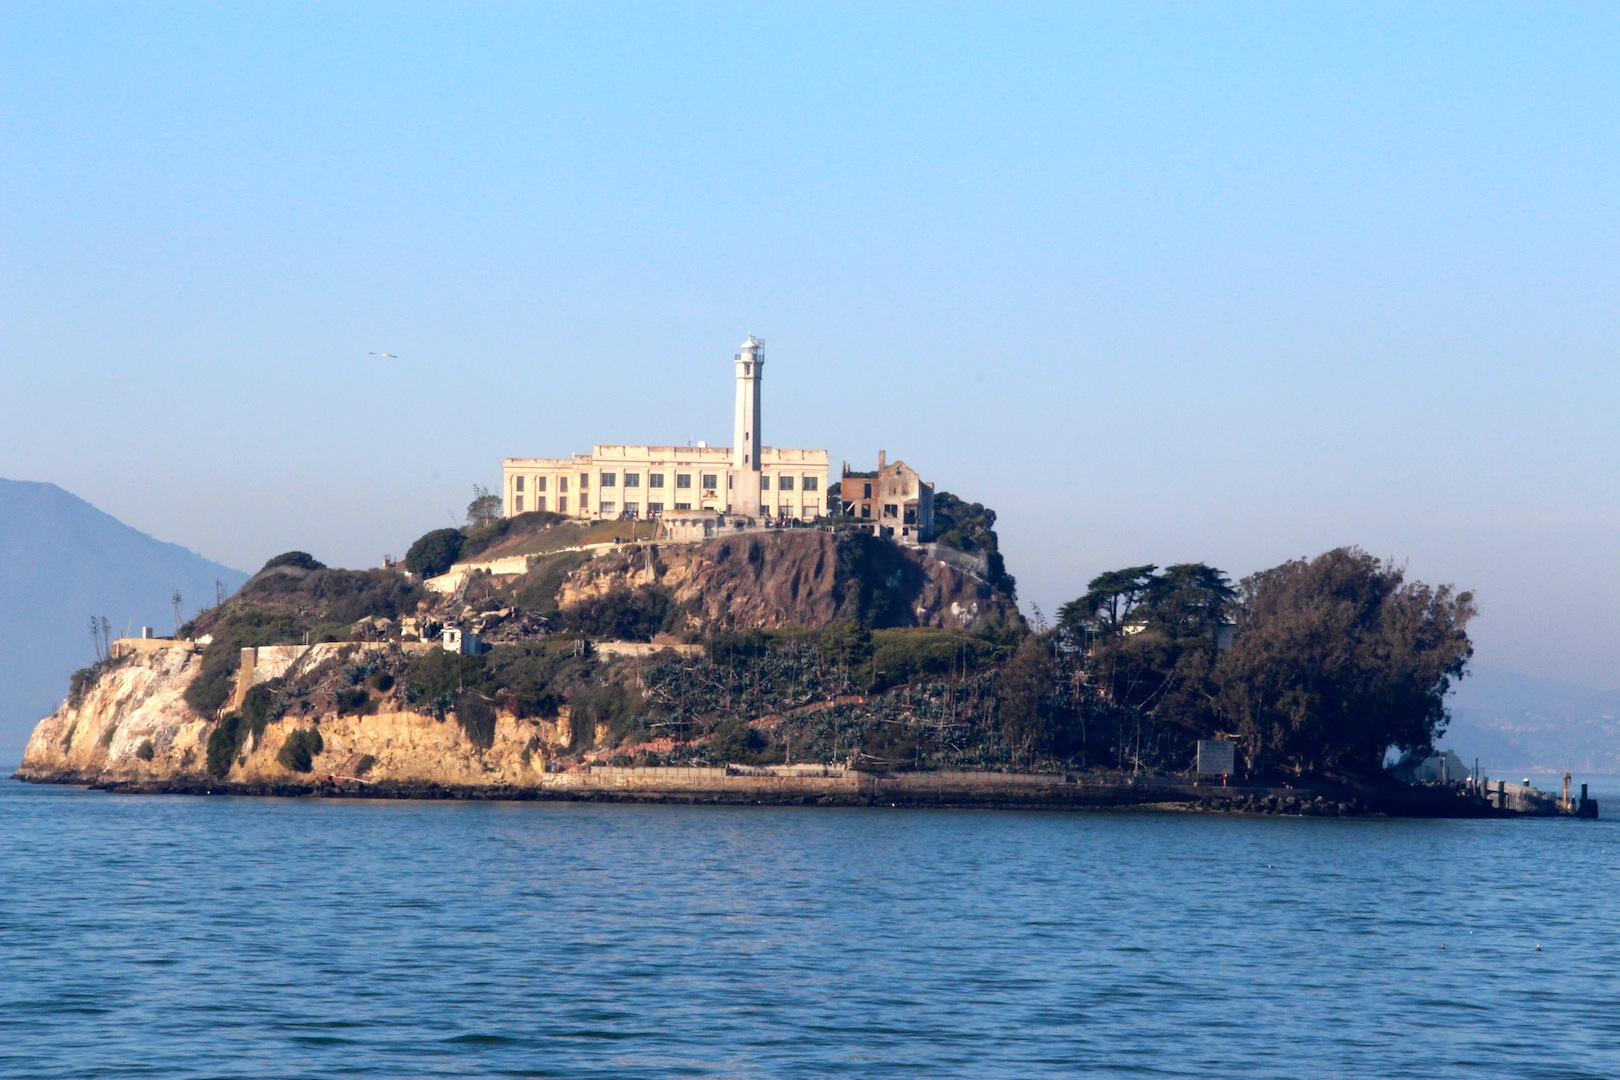 Texas A&M Prof Hoping To Unlock Secrets Of Alcatraz